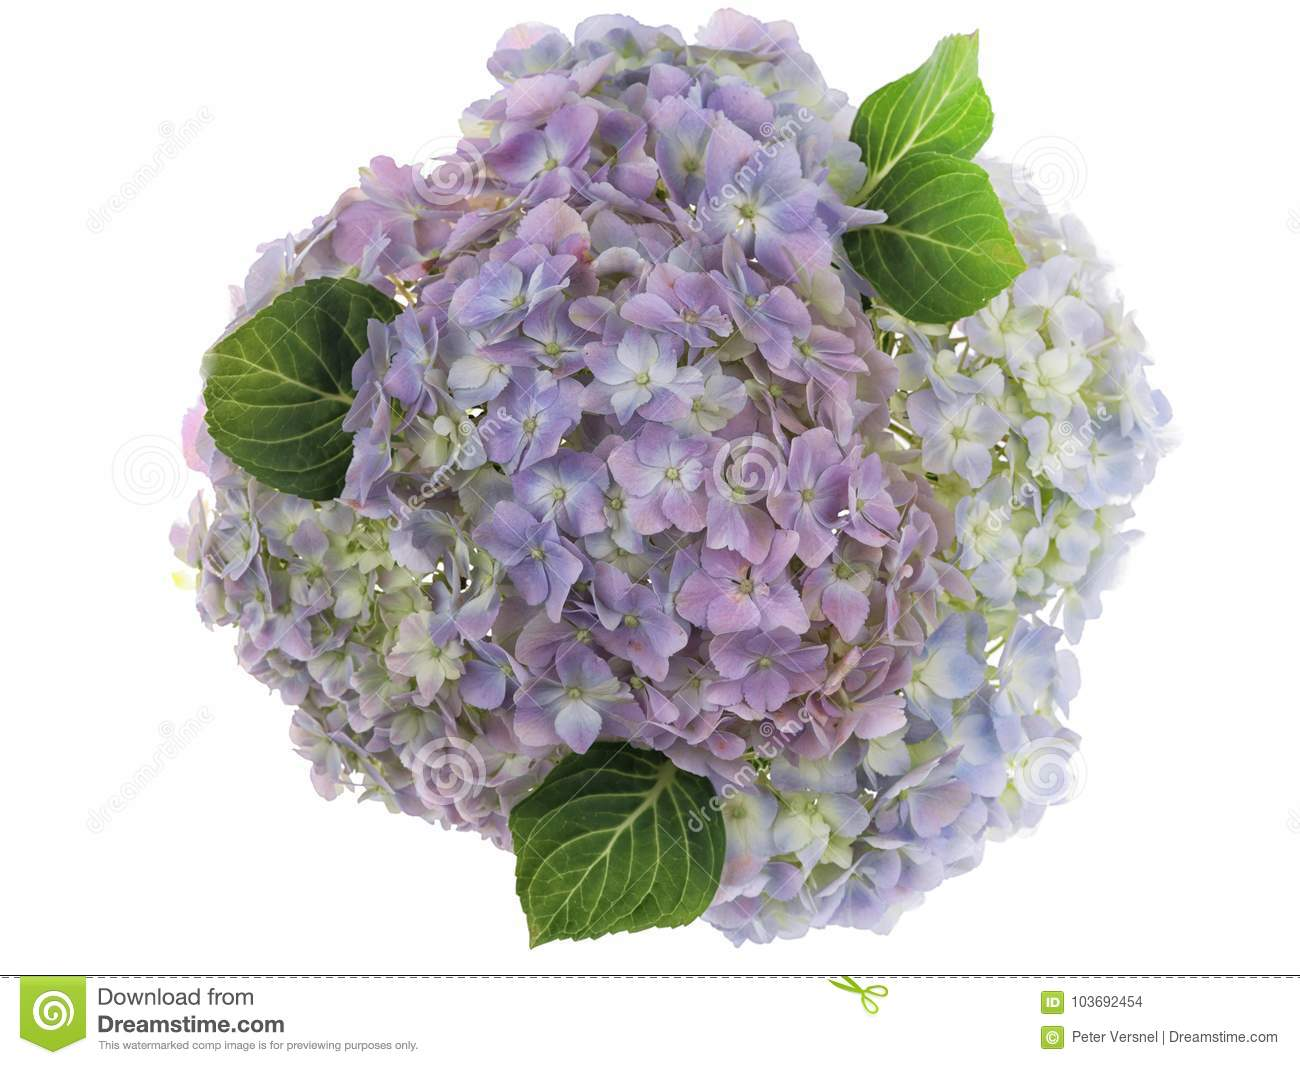 Pastel Colored Group Of Photographed Fresh Hydrangea Flowers On